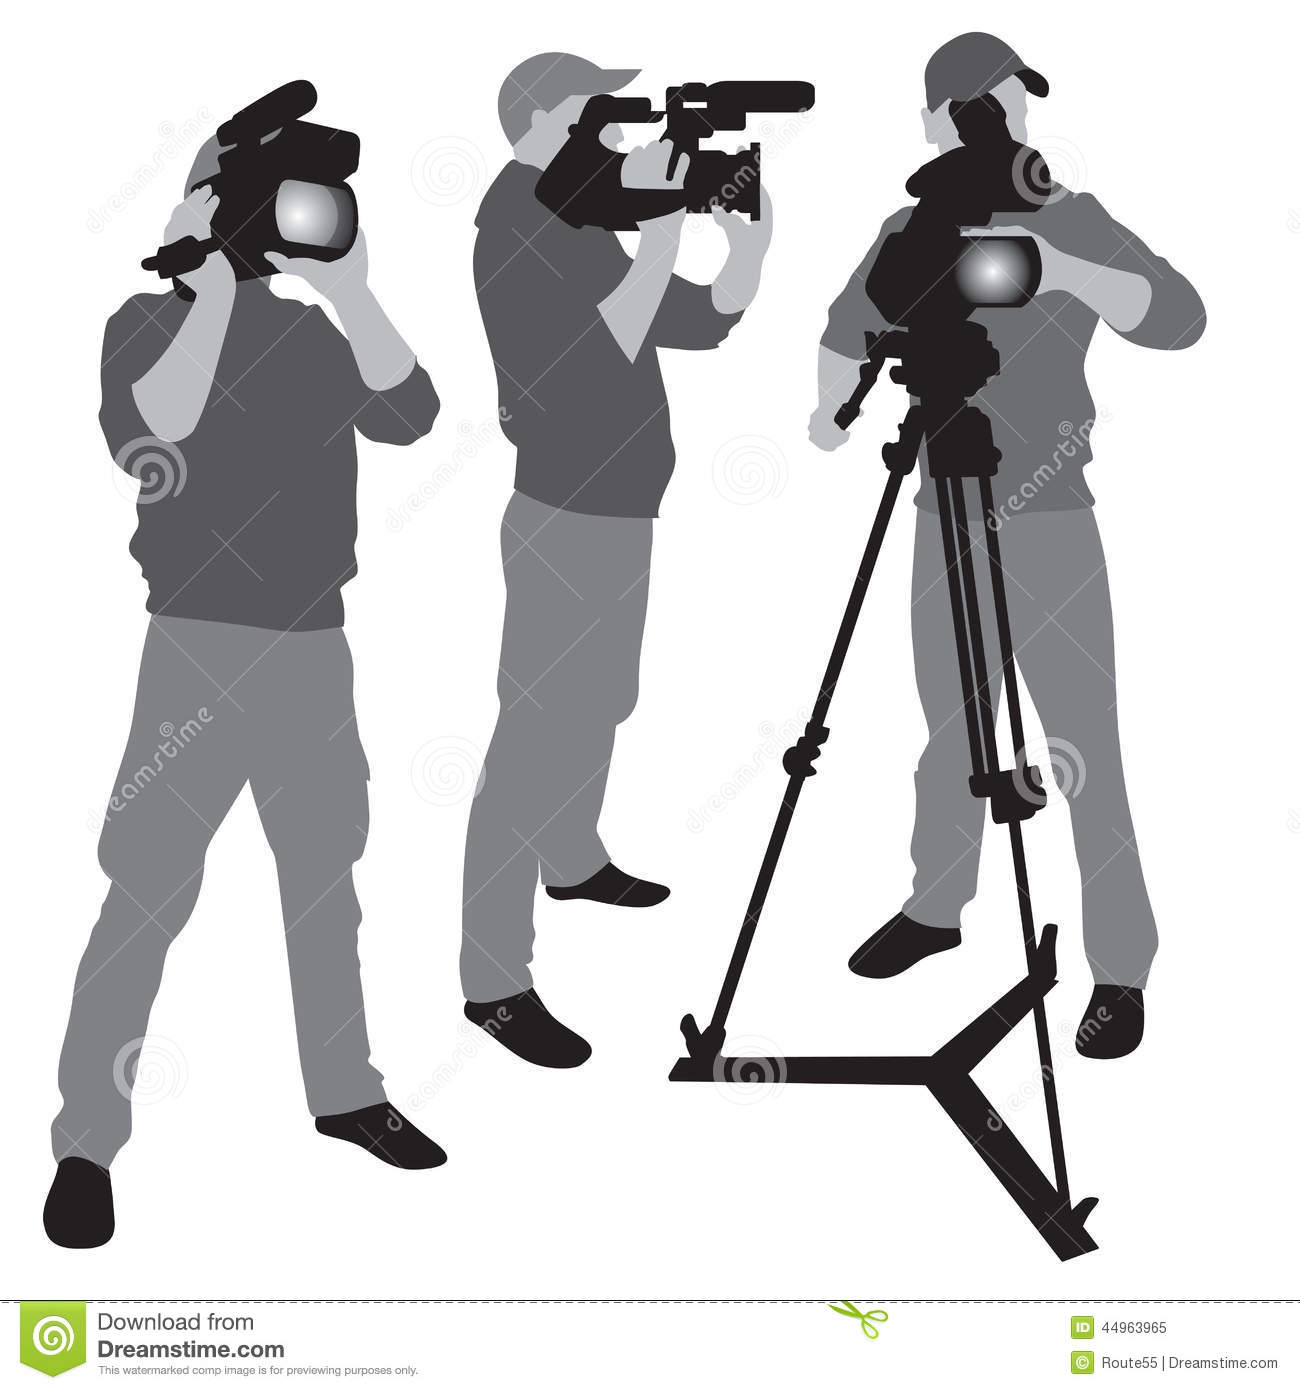 Boy Camcorder Stock Illustrations – 39 Boy Camcorder Stock ... for Camera Equipment Clipart  113cpg